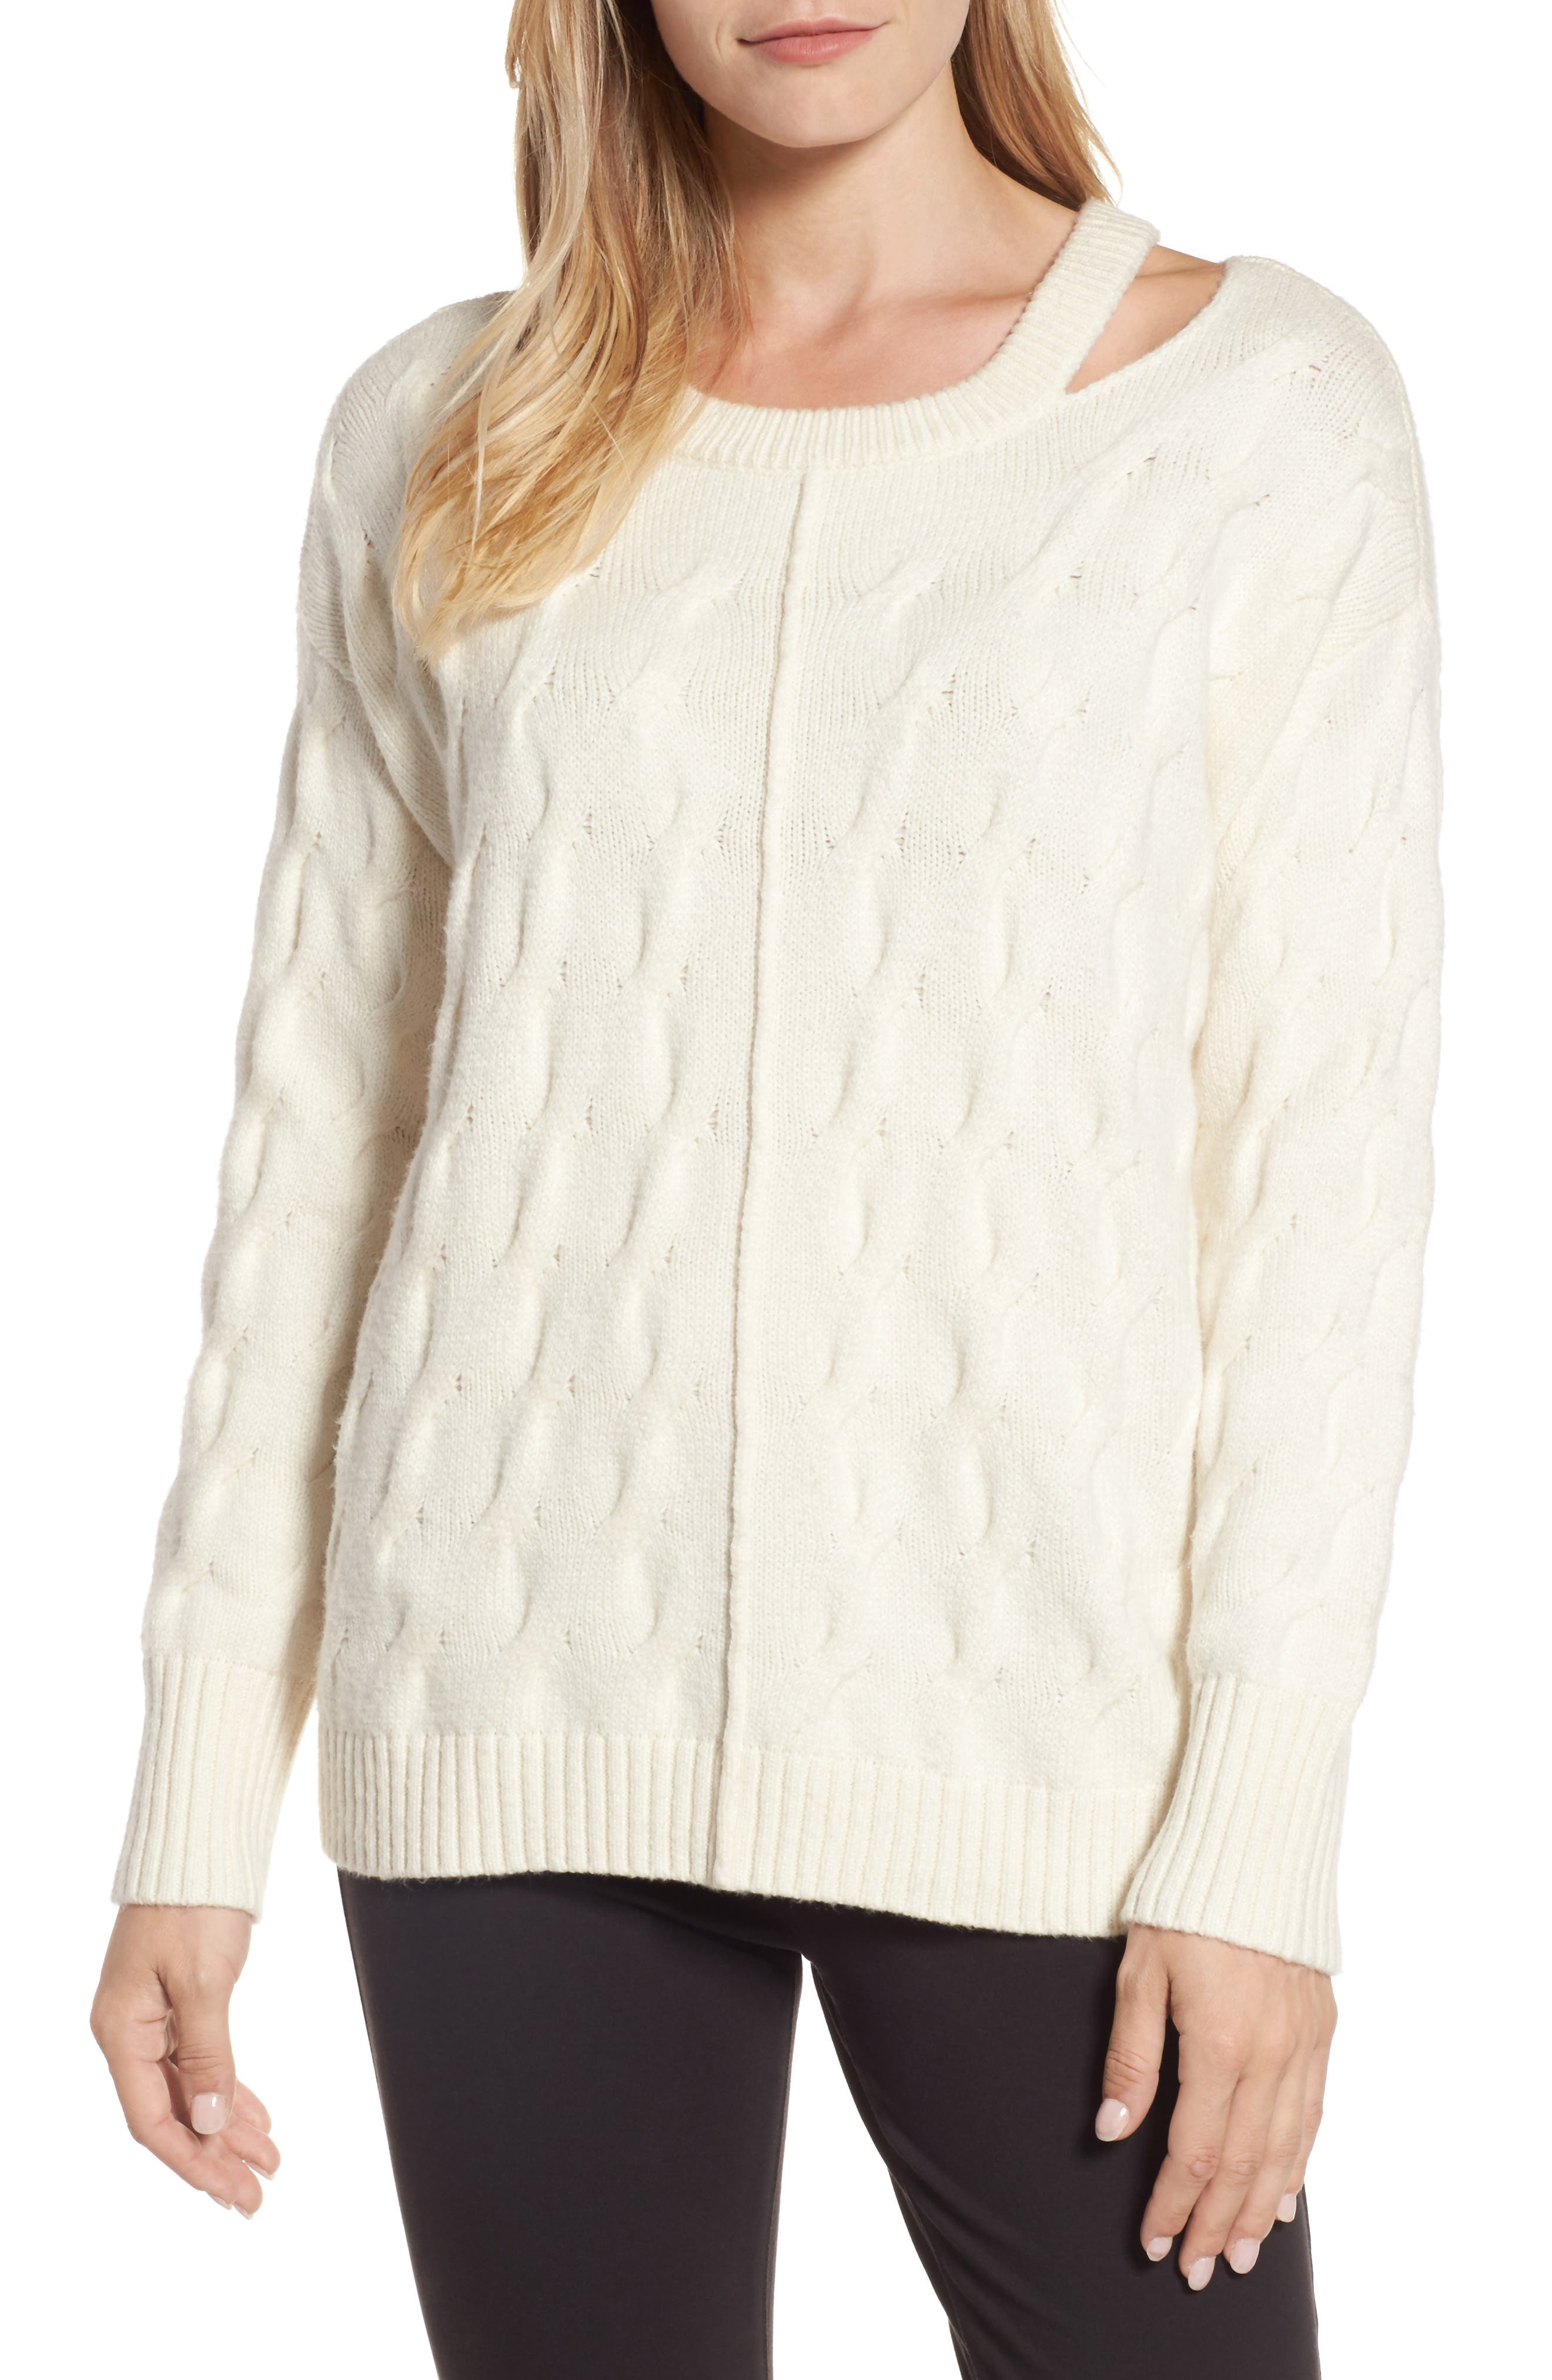 Vince Camuto Keyhole Neck Cable Sweater (Regular & Petite)